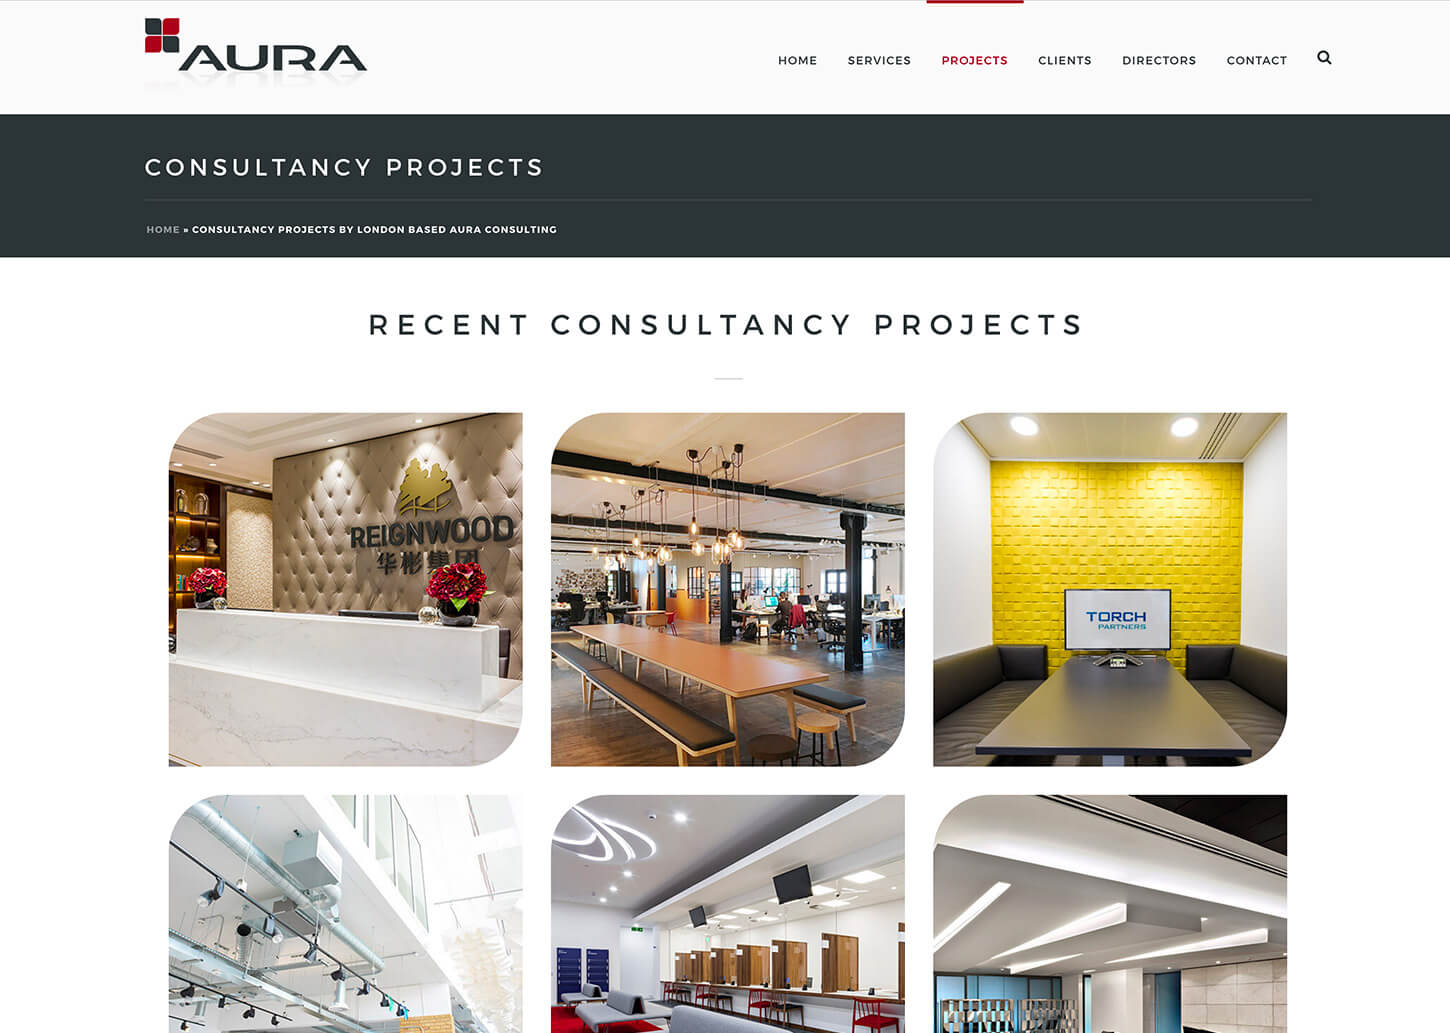 Project management company website: Consultancy project page